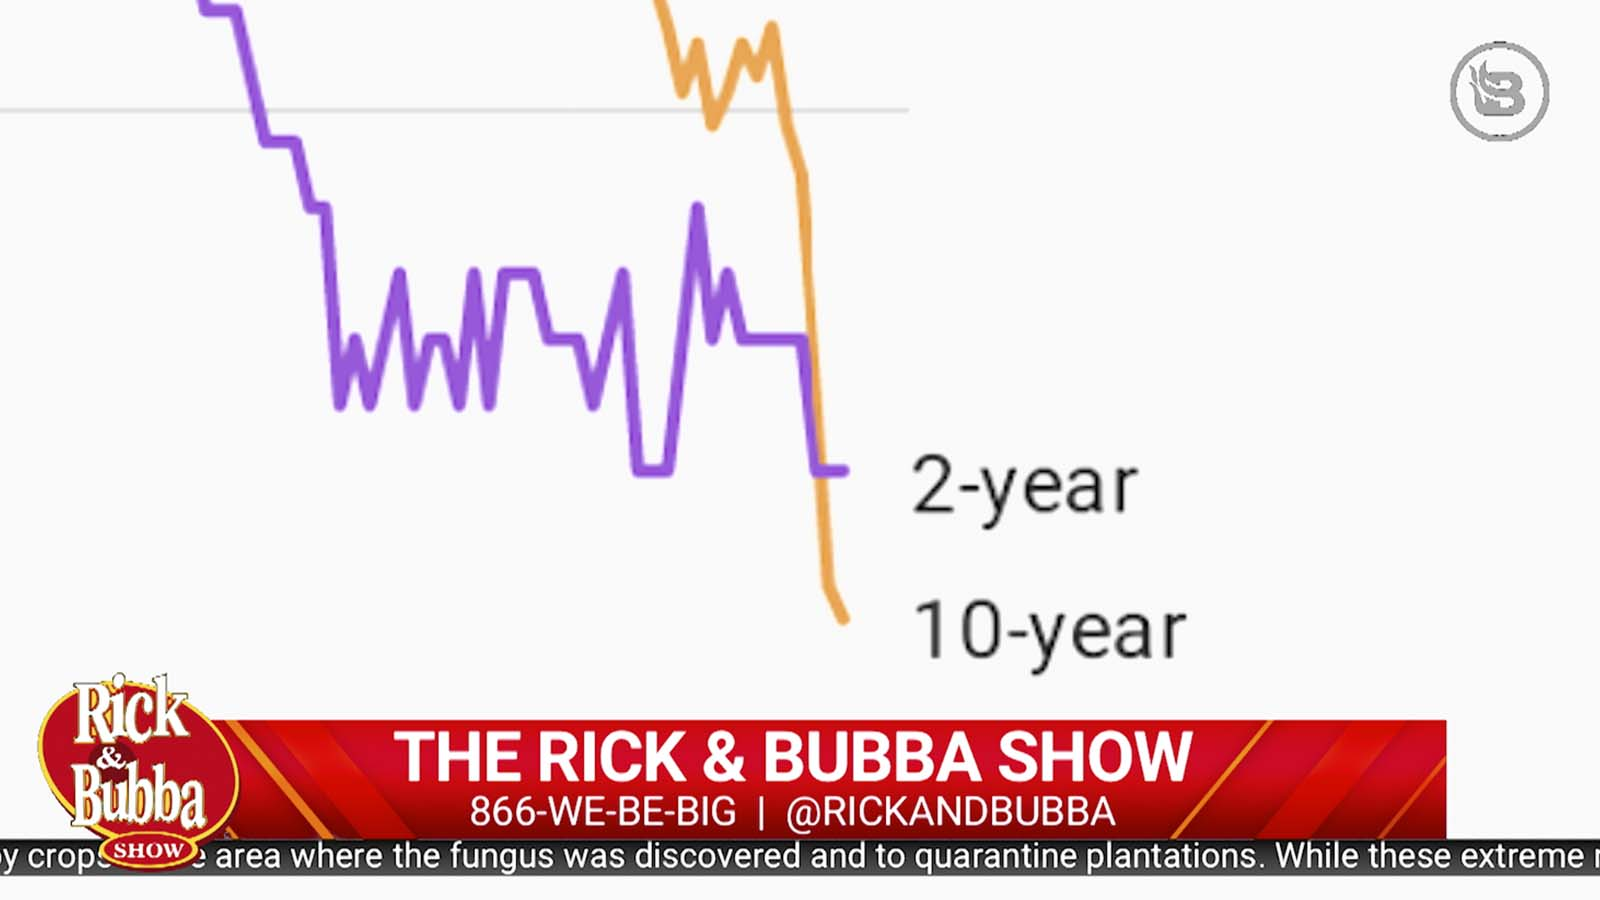 Daily Best of August 15 | Rick & Bubba